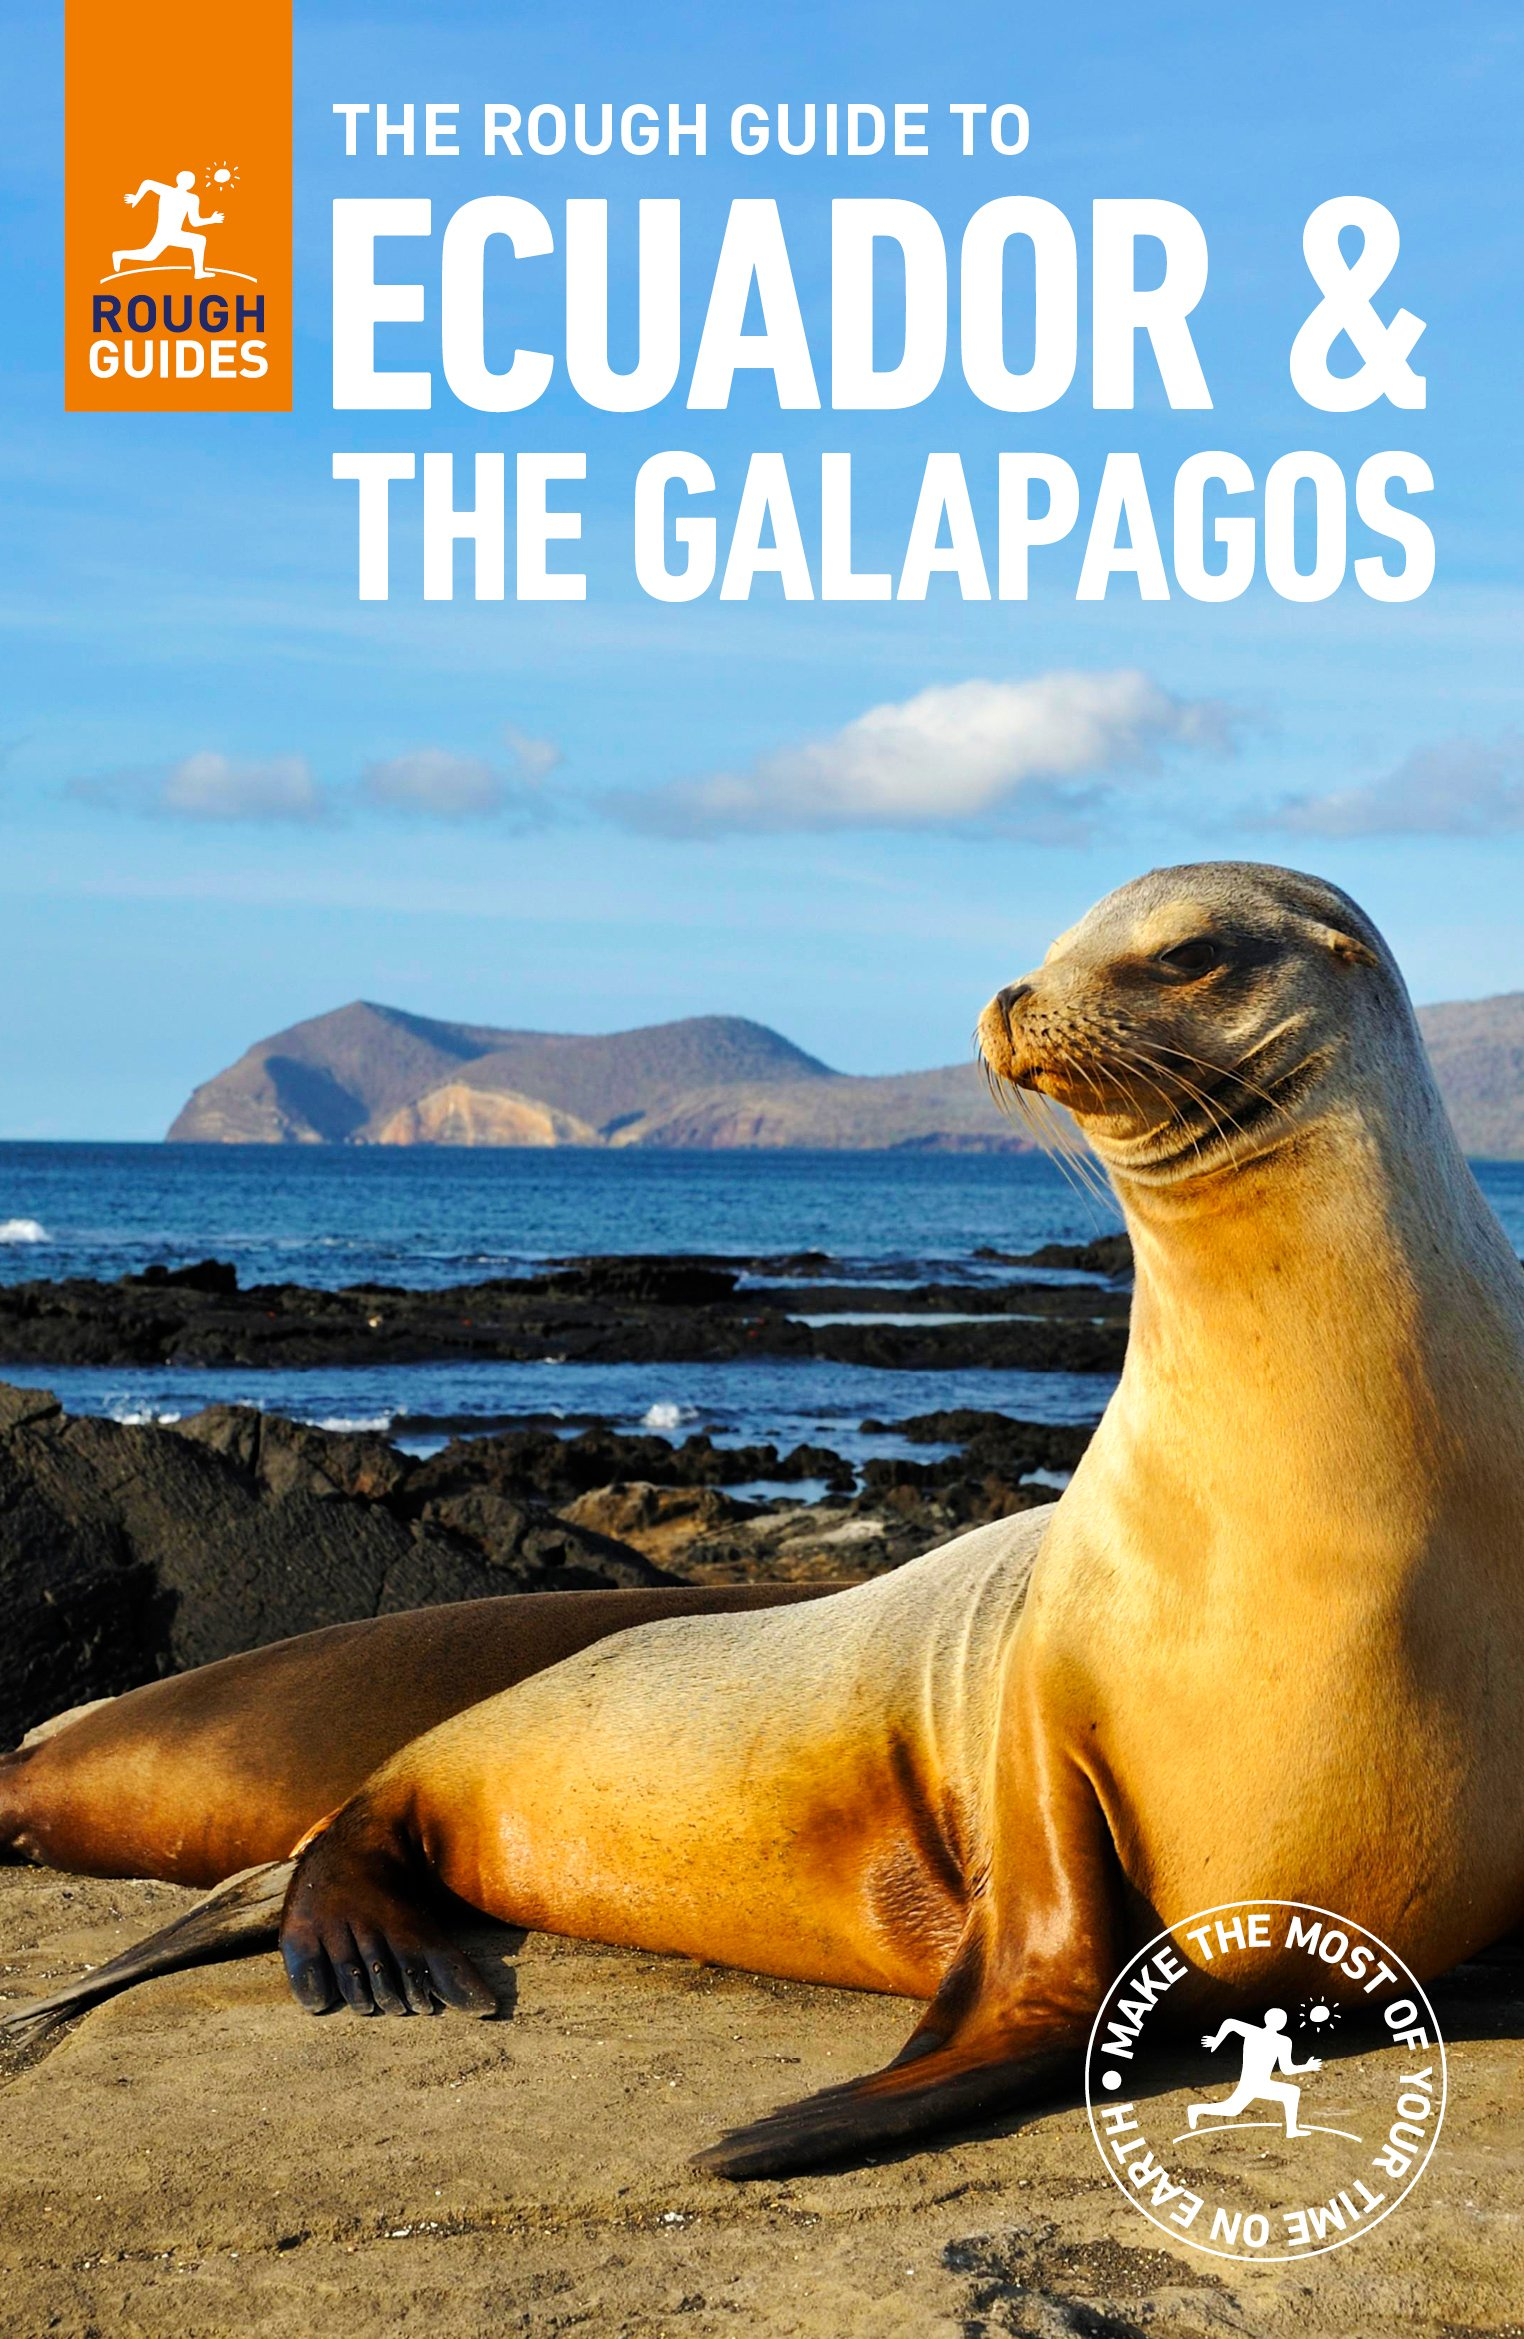 Rough Guide Ecuador 9781789194555  Rough Guide Rough Guides  Reisgidsen Ecuador, Galapagos